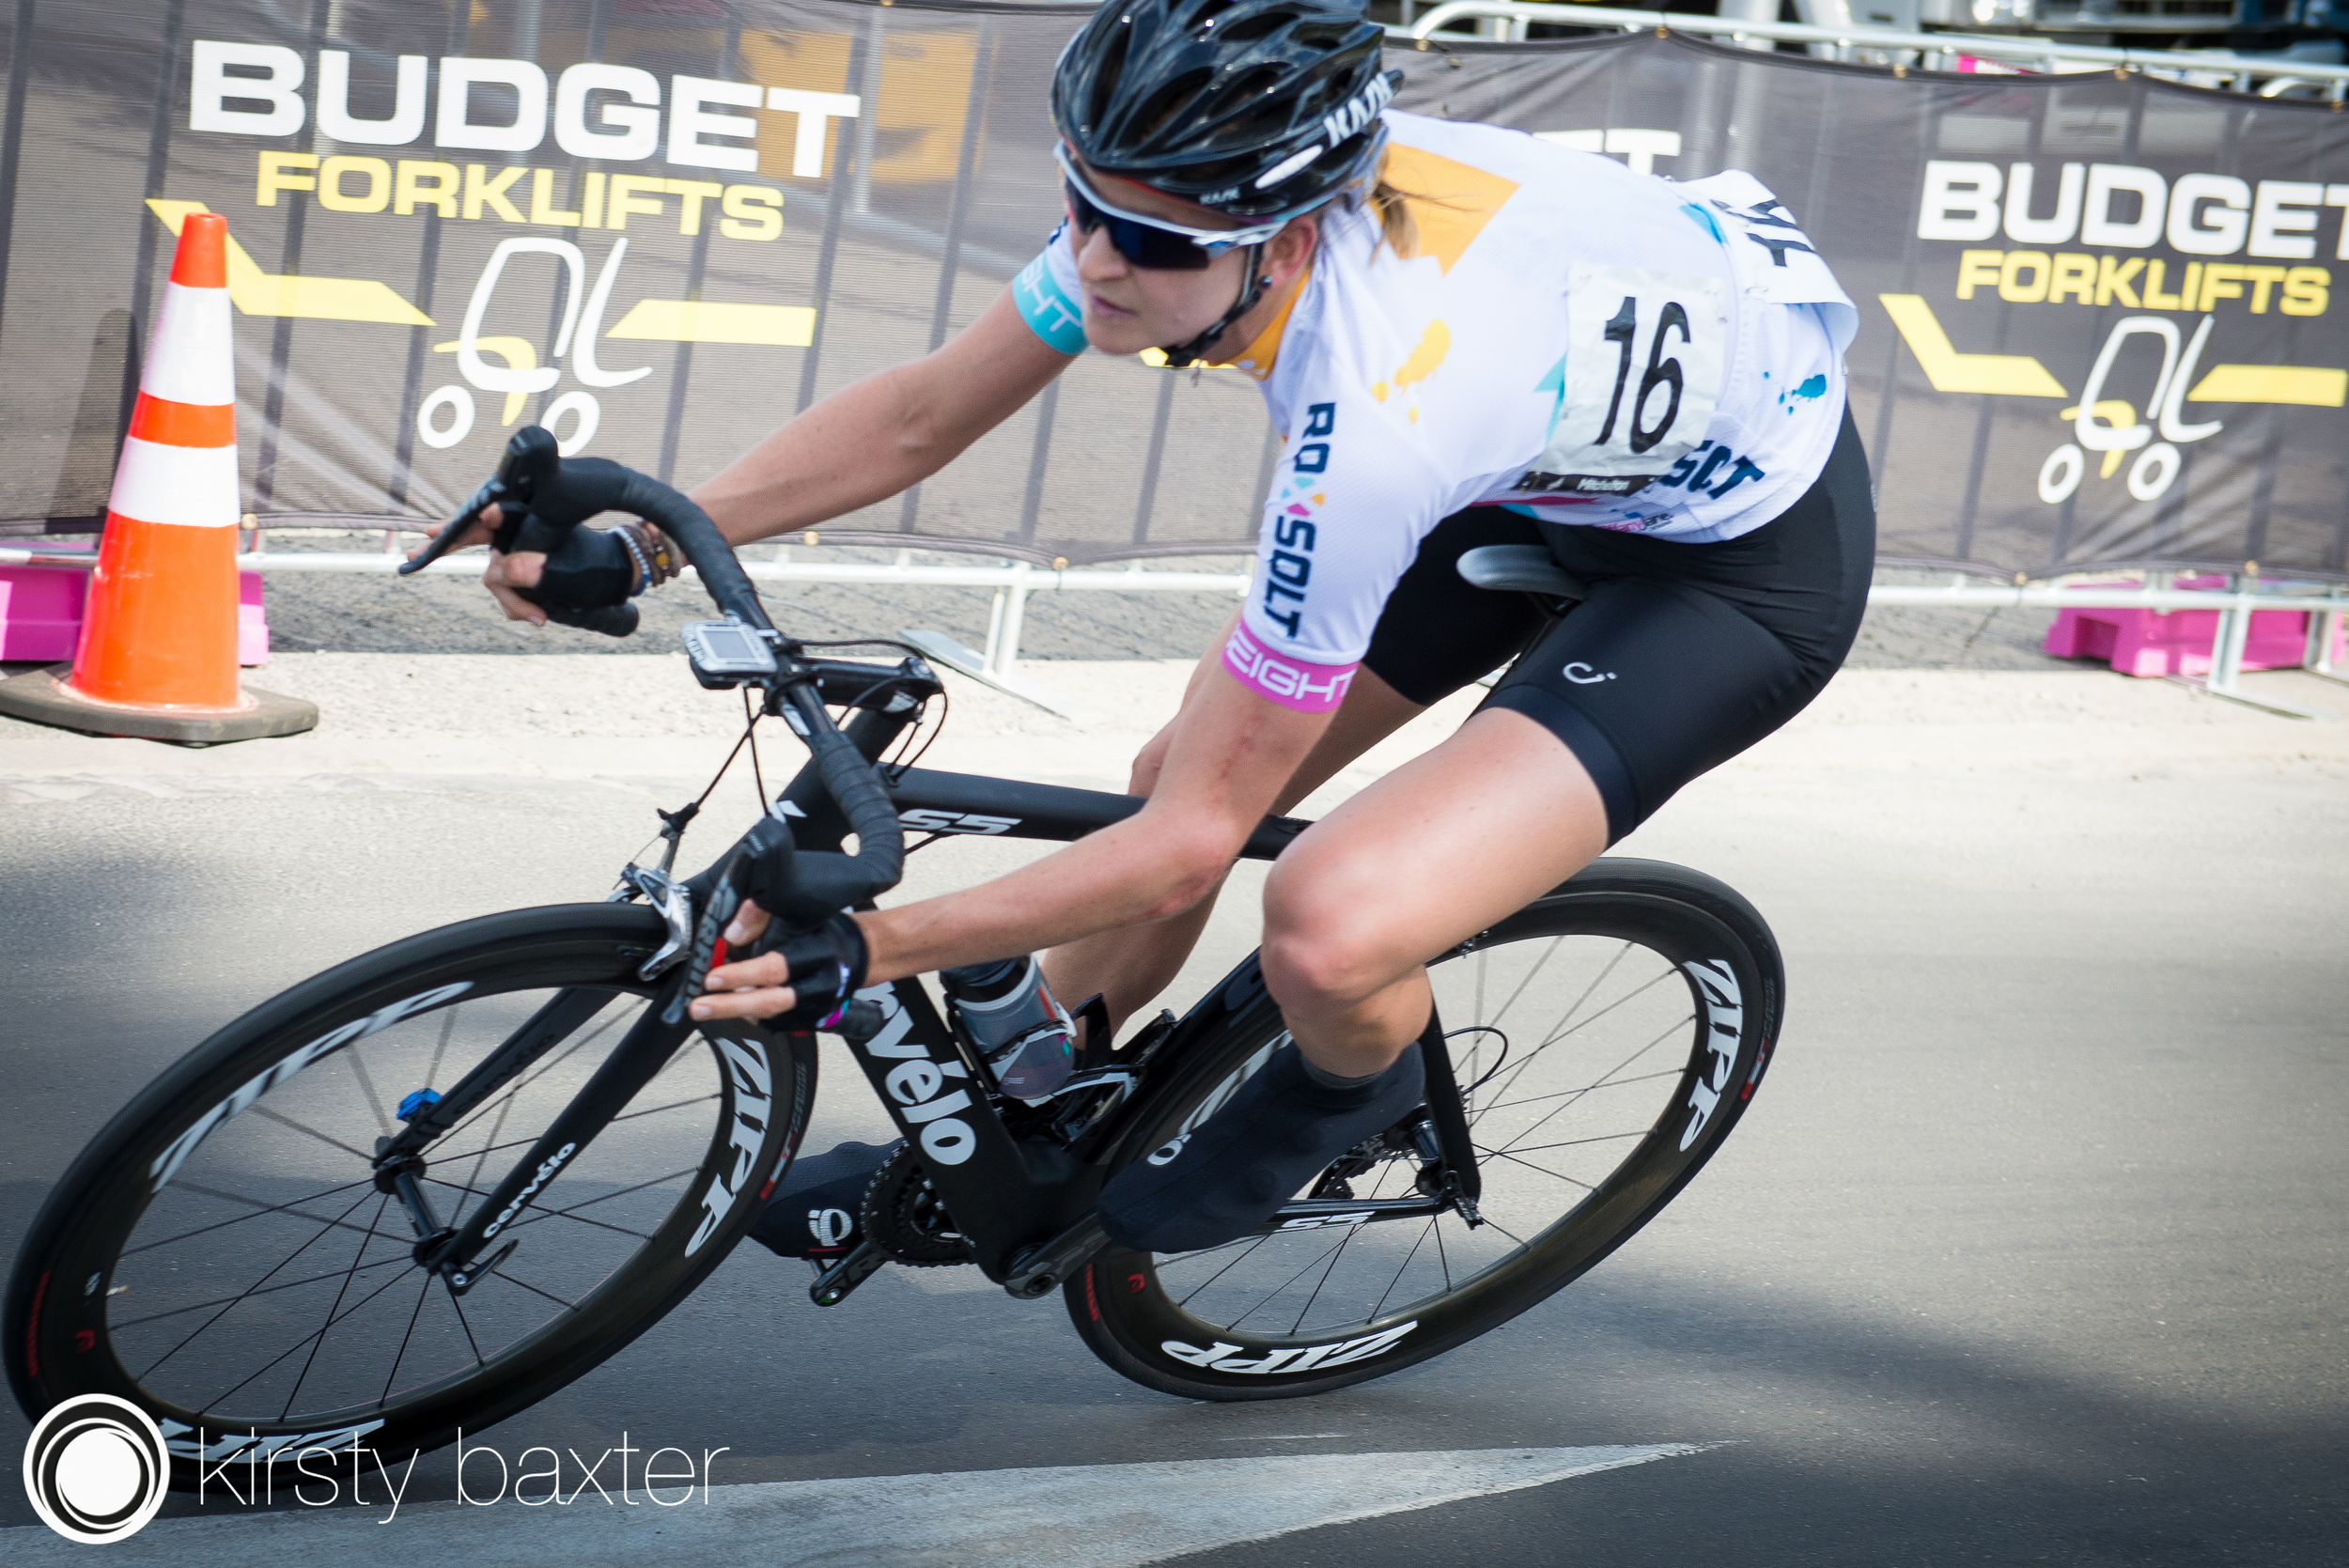 Loren Rowney at the recent Mitchelton Bay Cycling Classic. Photo credit: Kirsty Baxter.